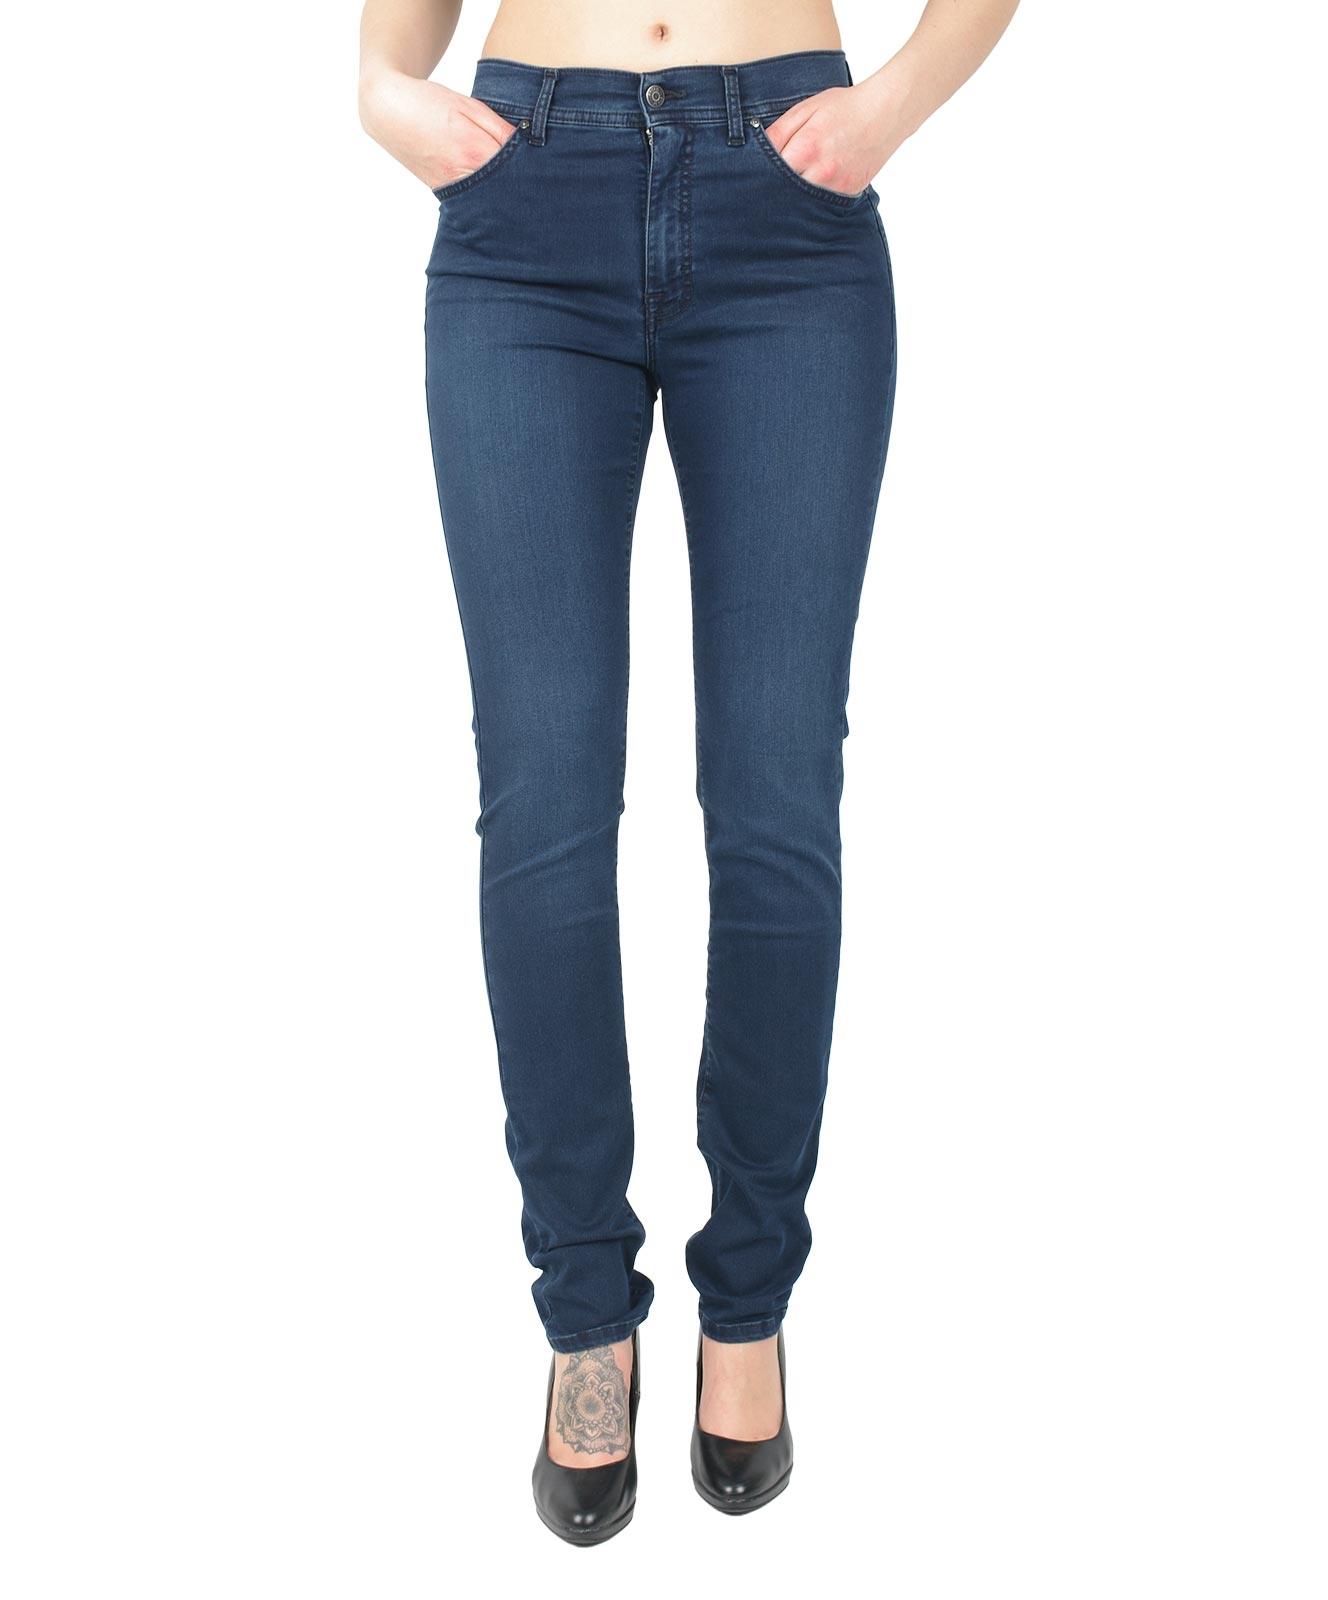 Hosen - Angels Straight Leg Jeans Cici in Blue Blue Used  - Onlineshop Jeans Meile